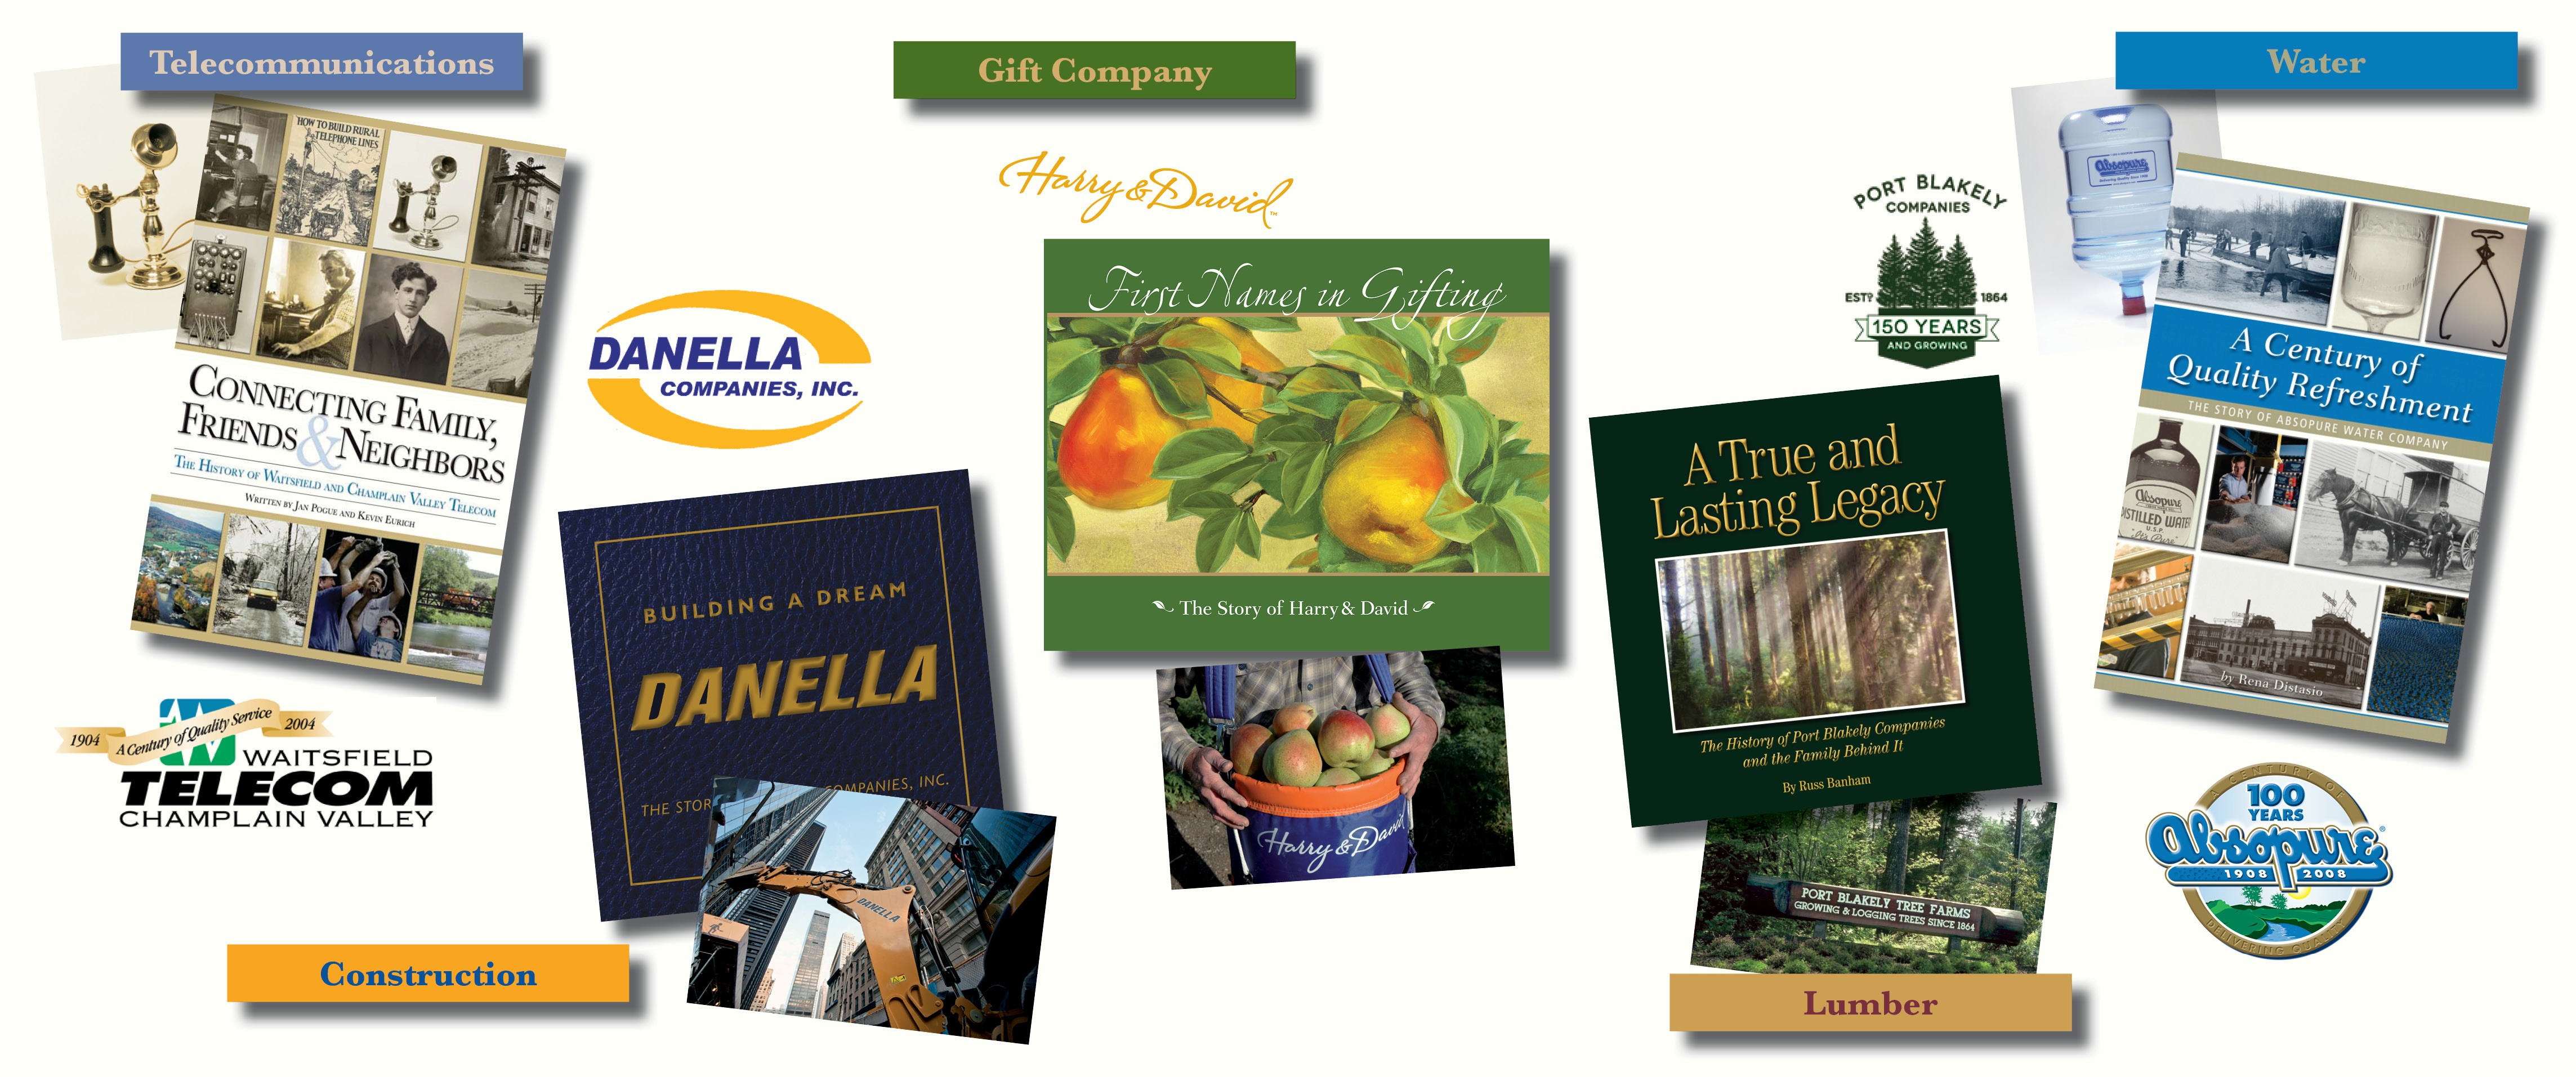 Whether your business specializes in telecommunications, construction, lumber, water or even gifts, let Bookhouse Group, Inc. create a commemorative book for you.